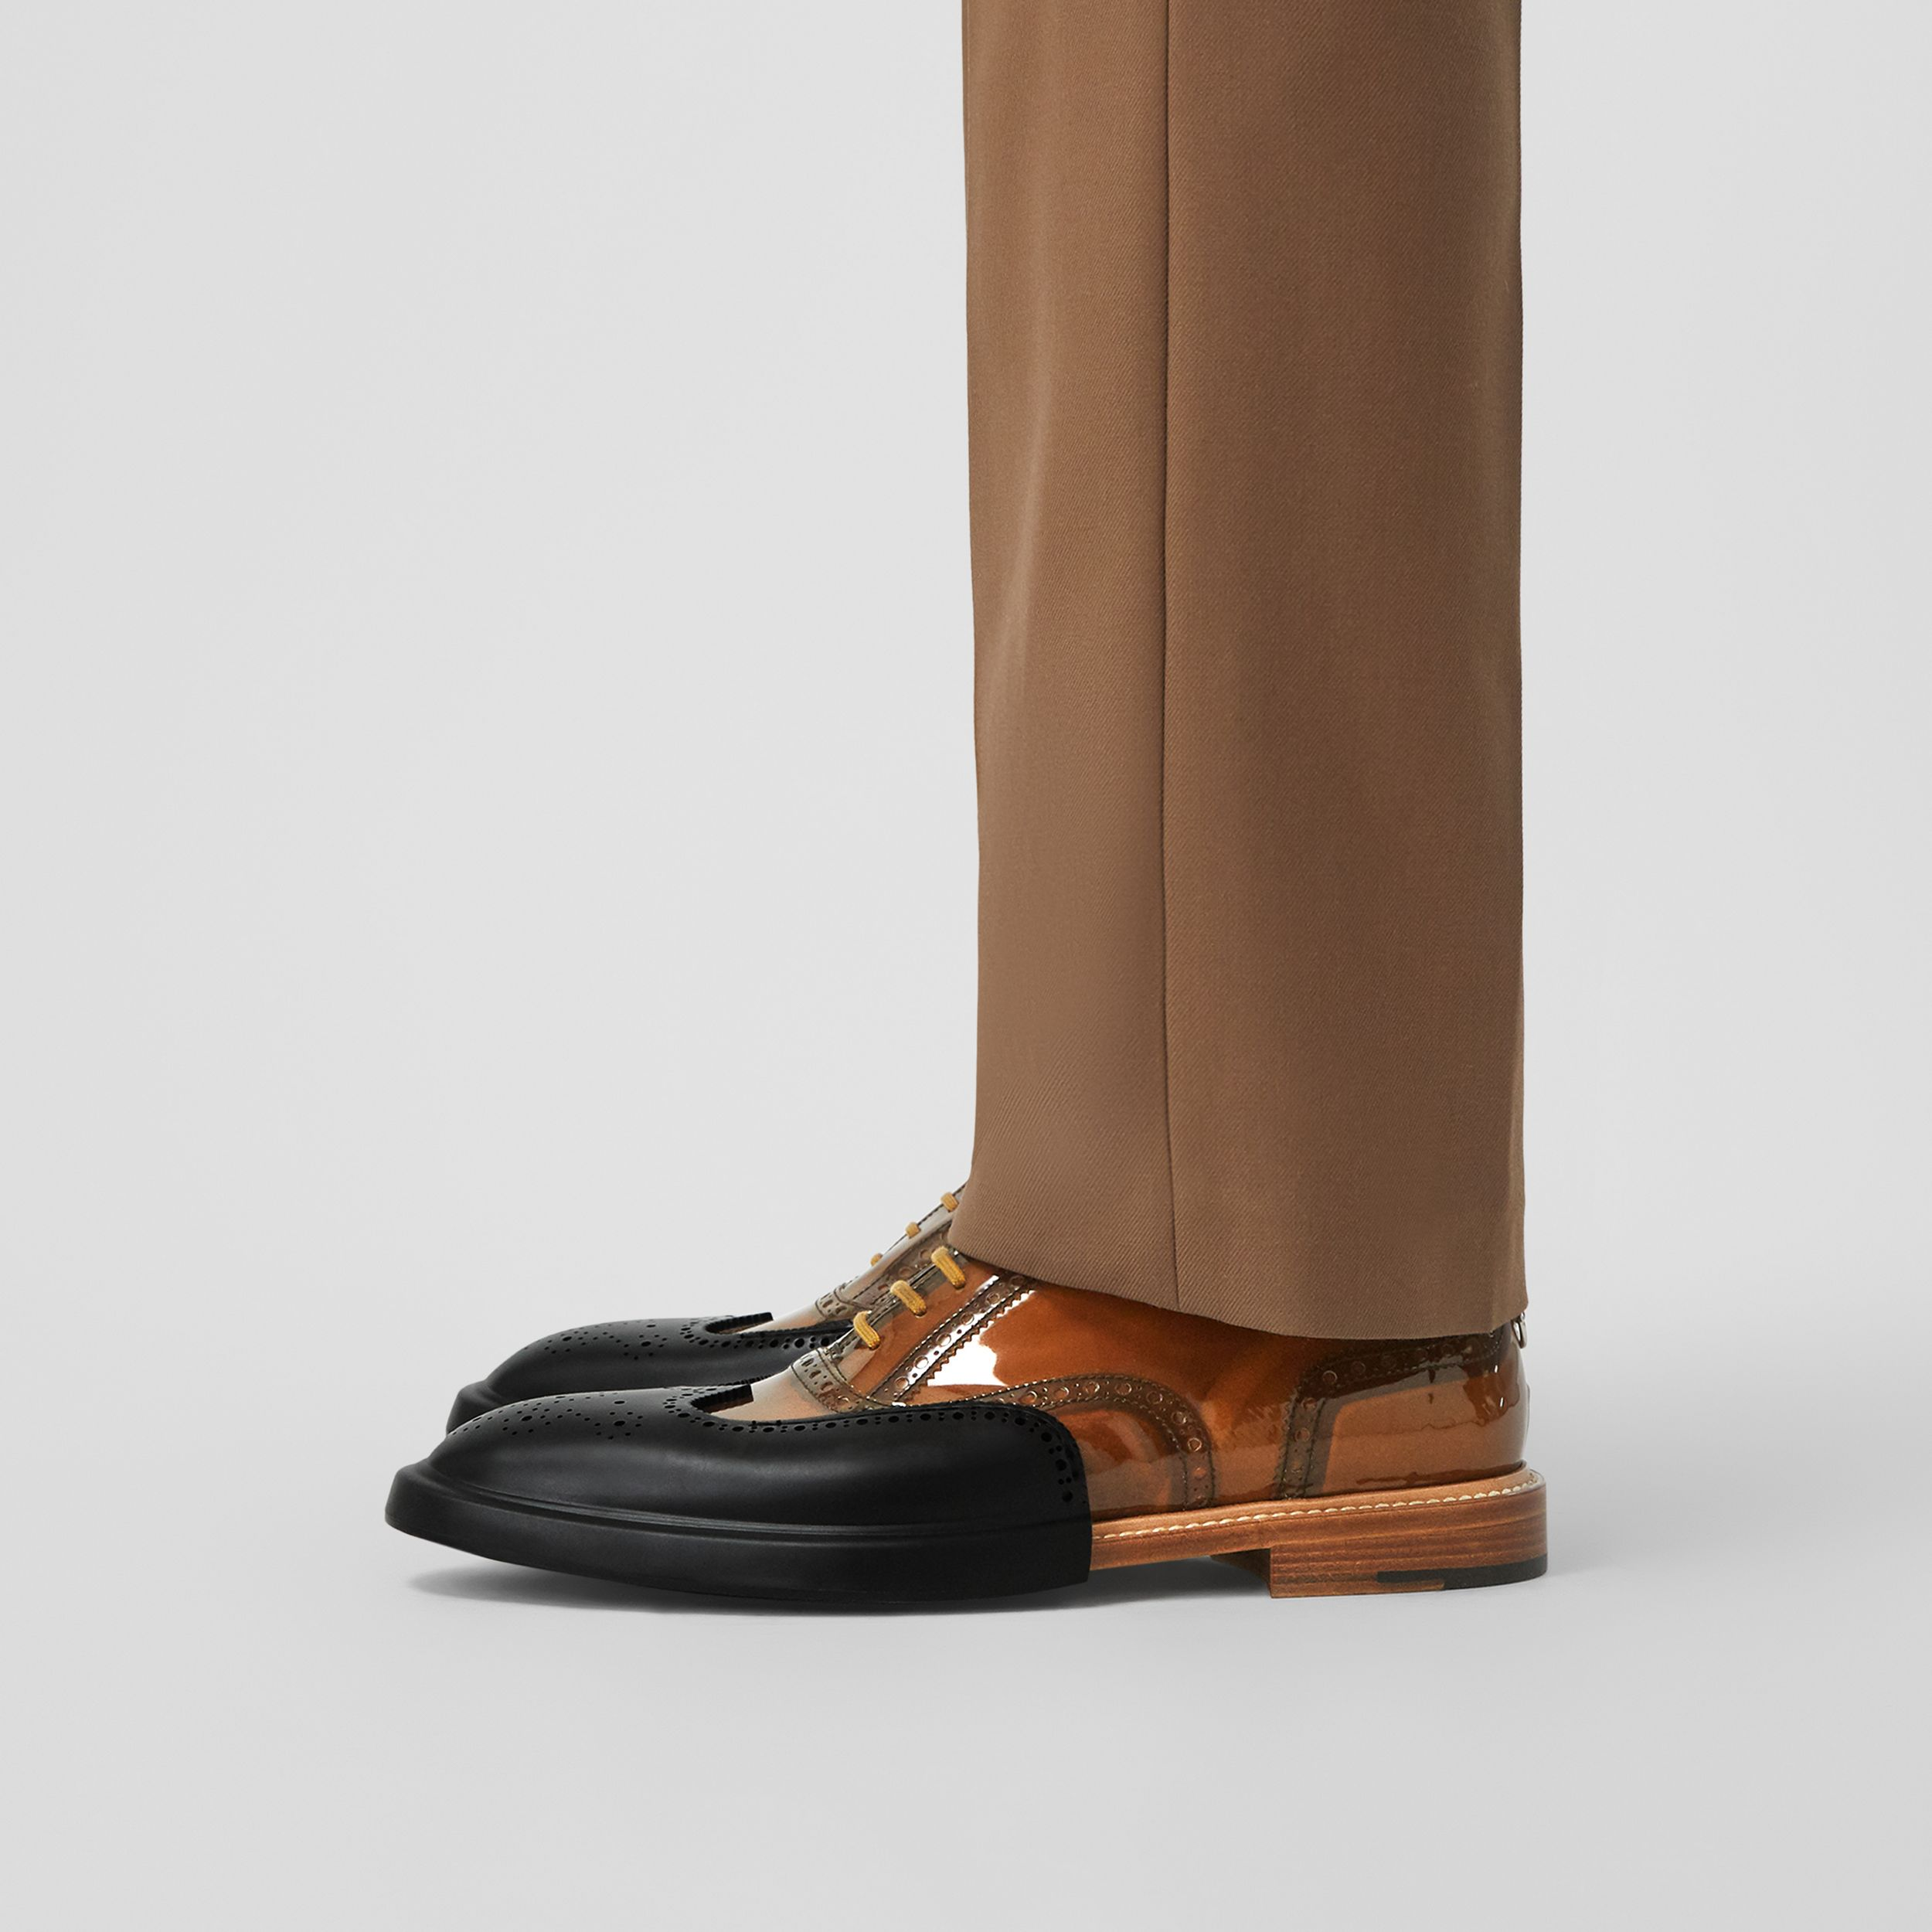 Toe Cap Detail Vinyl and Leather Oxford Brogues in Brown/black - Men | Burberry United Kingdom - 3